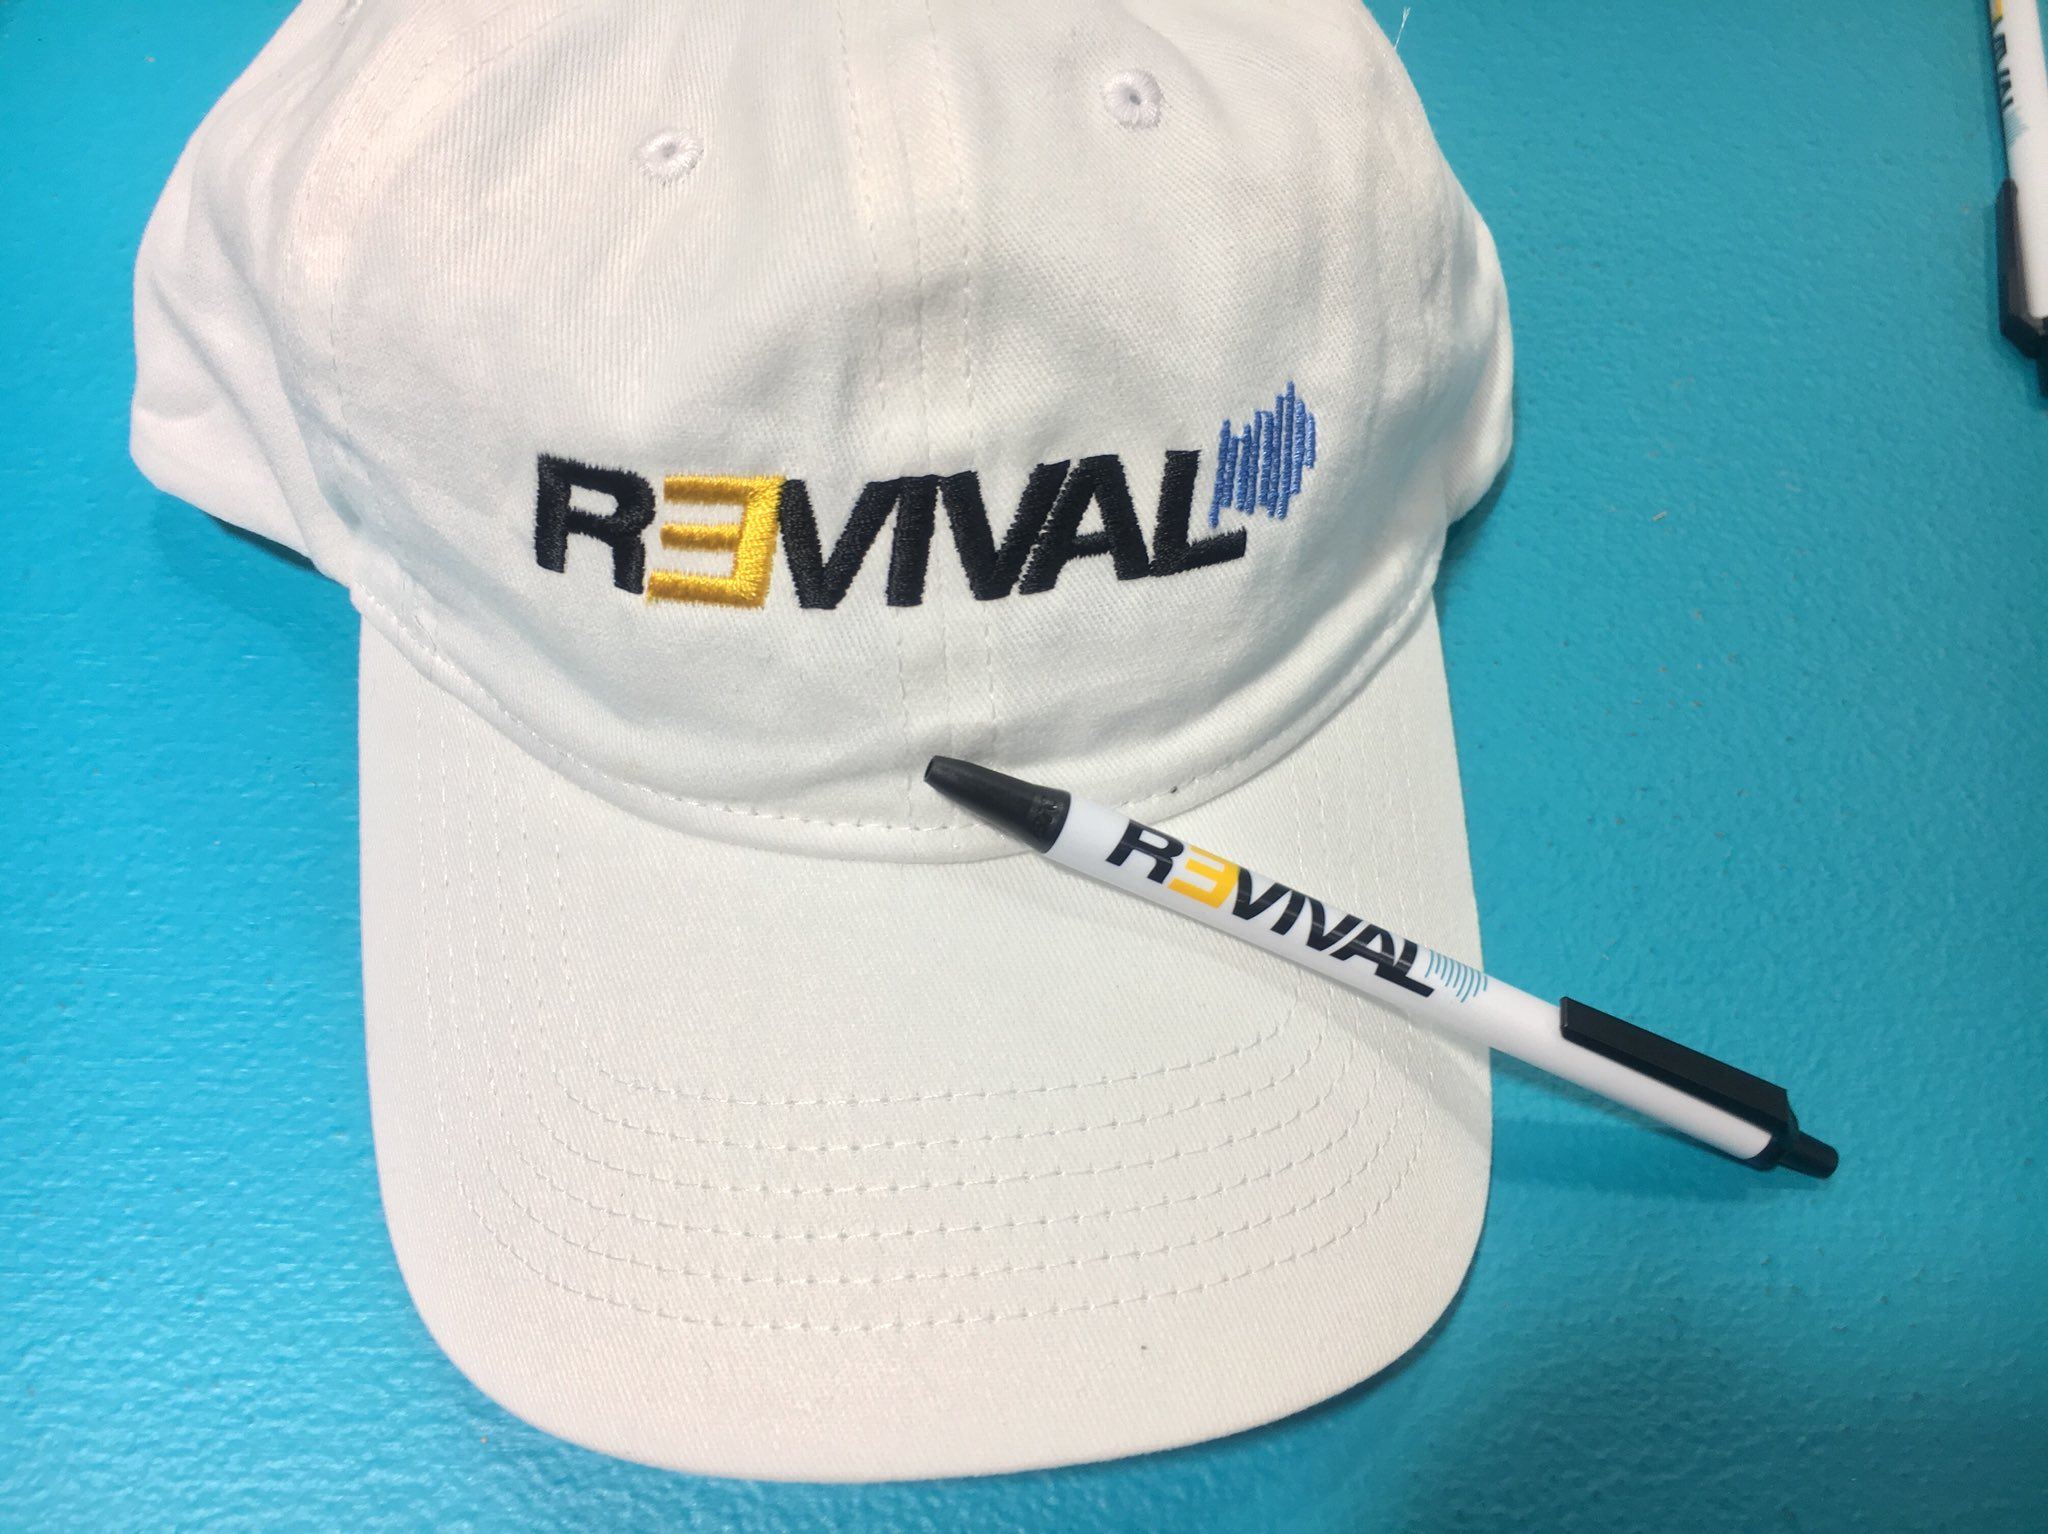 """The hiphopdx reporter has recently talked to the """"Revival"""" representative. ComplexCon visitors are even offered souvenirs with the Revival symbols"""